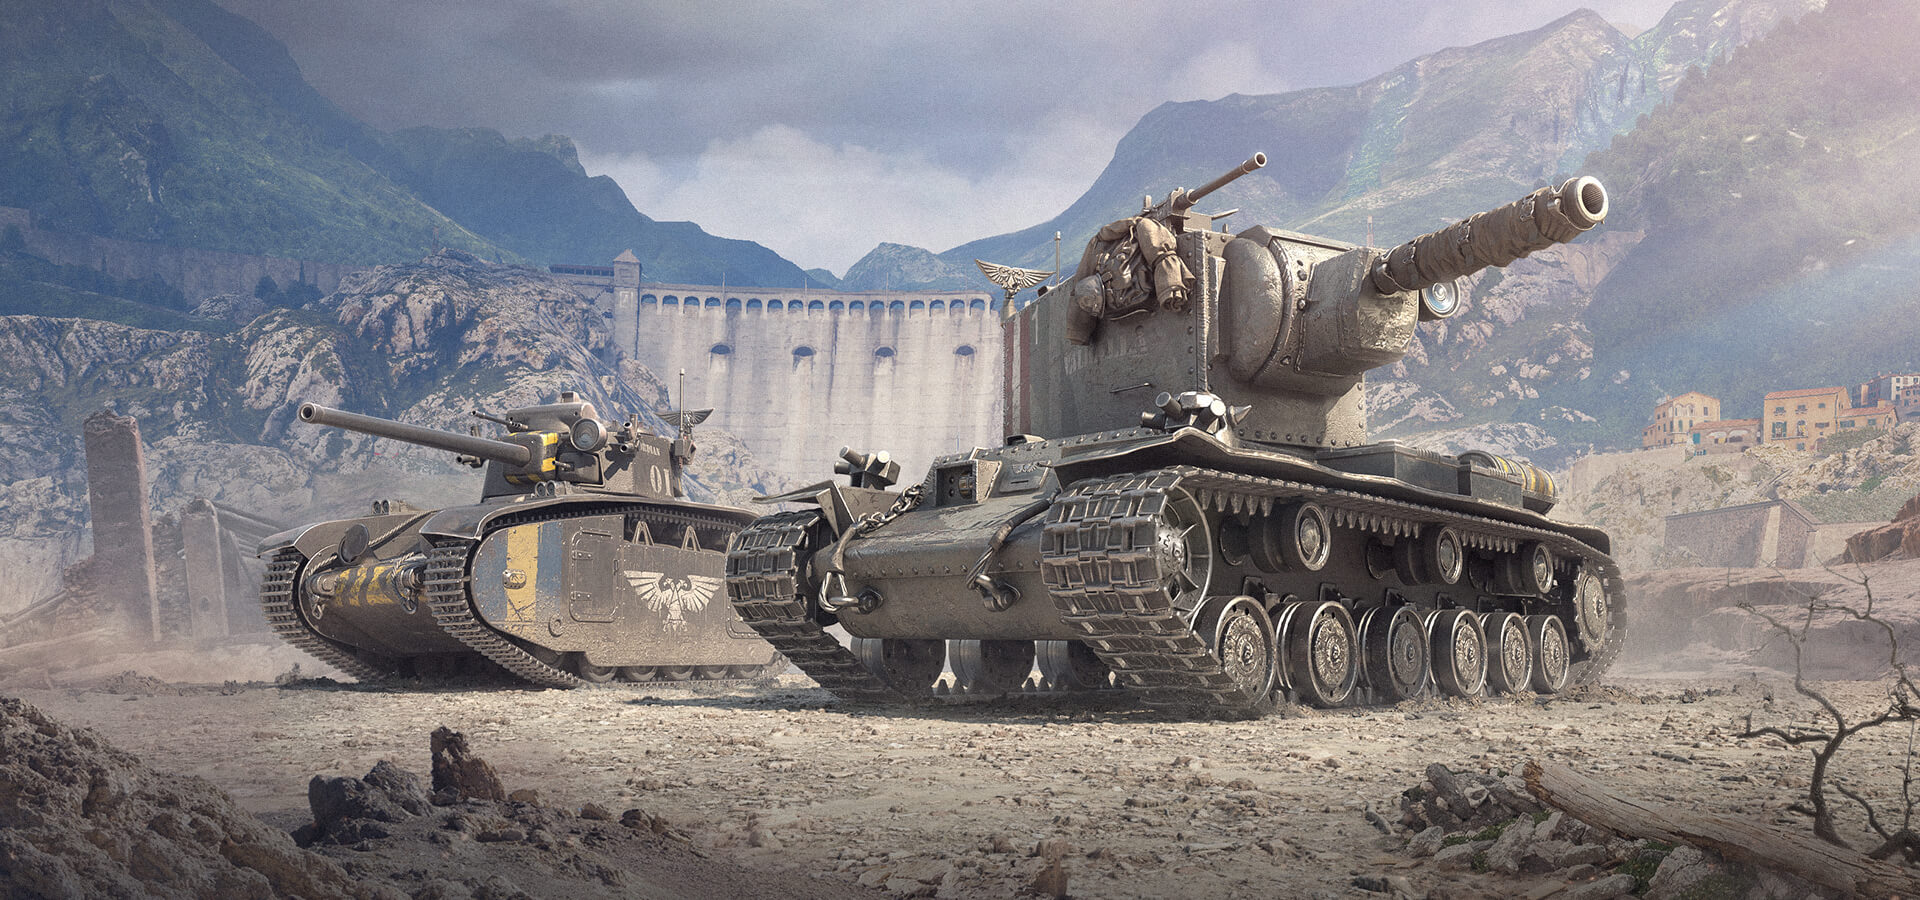 The Armored Patrol – WoT, WoWS & WT: News, leaks, and more!